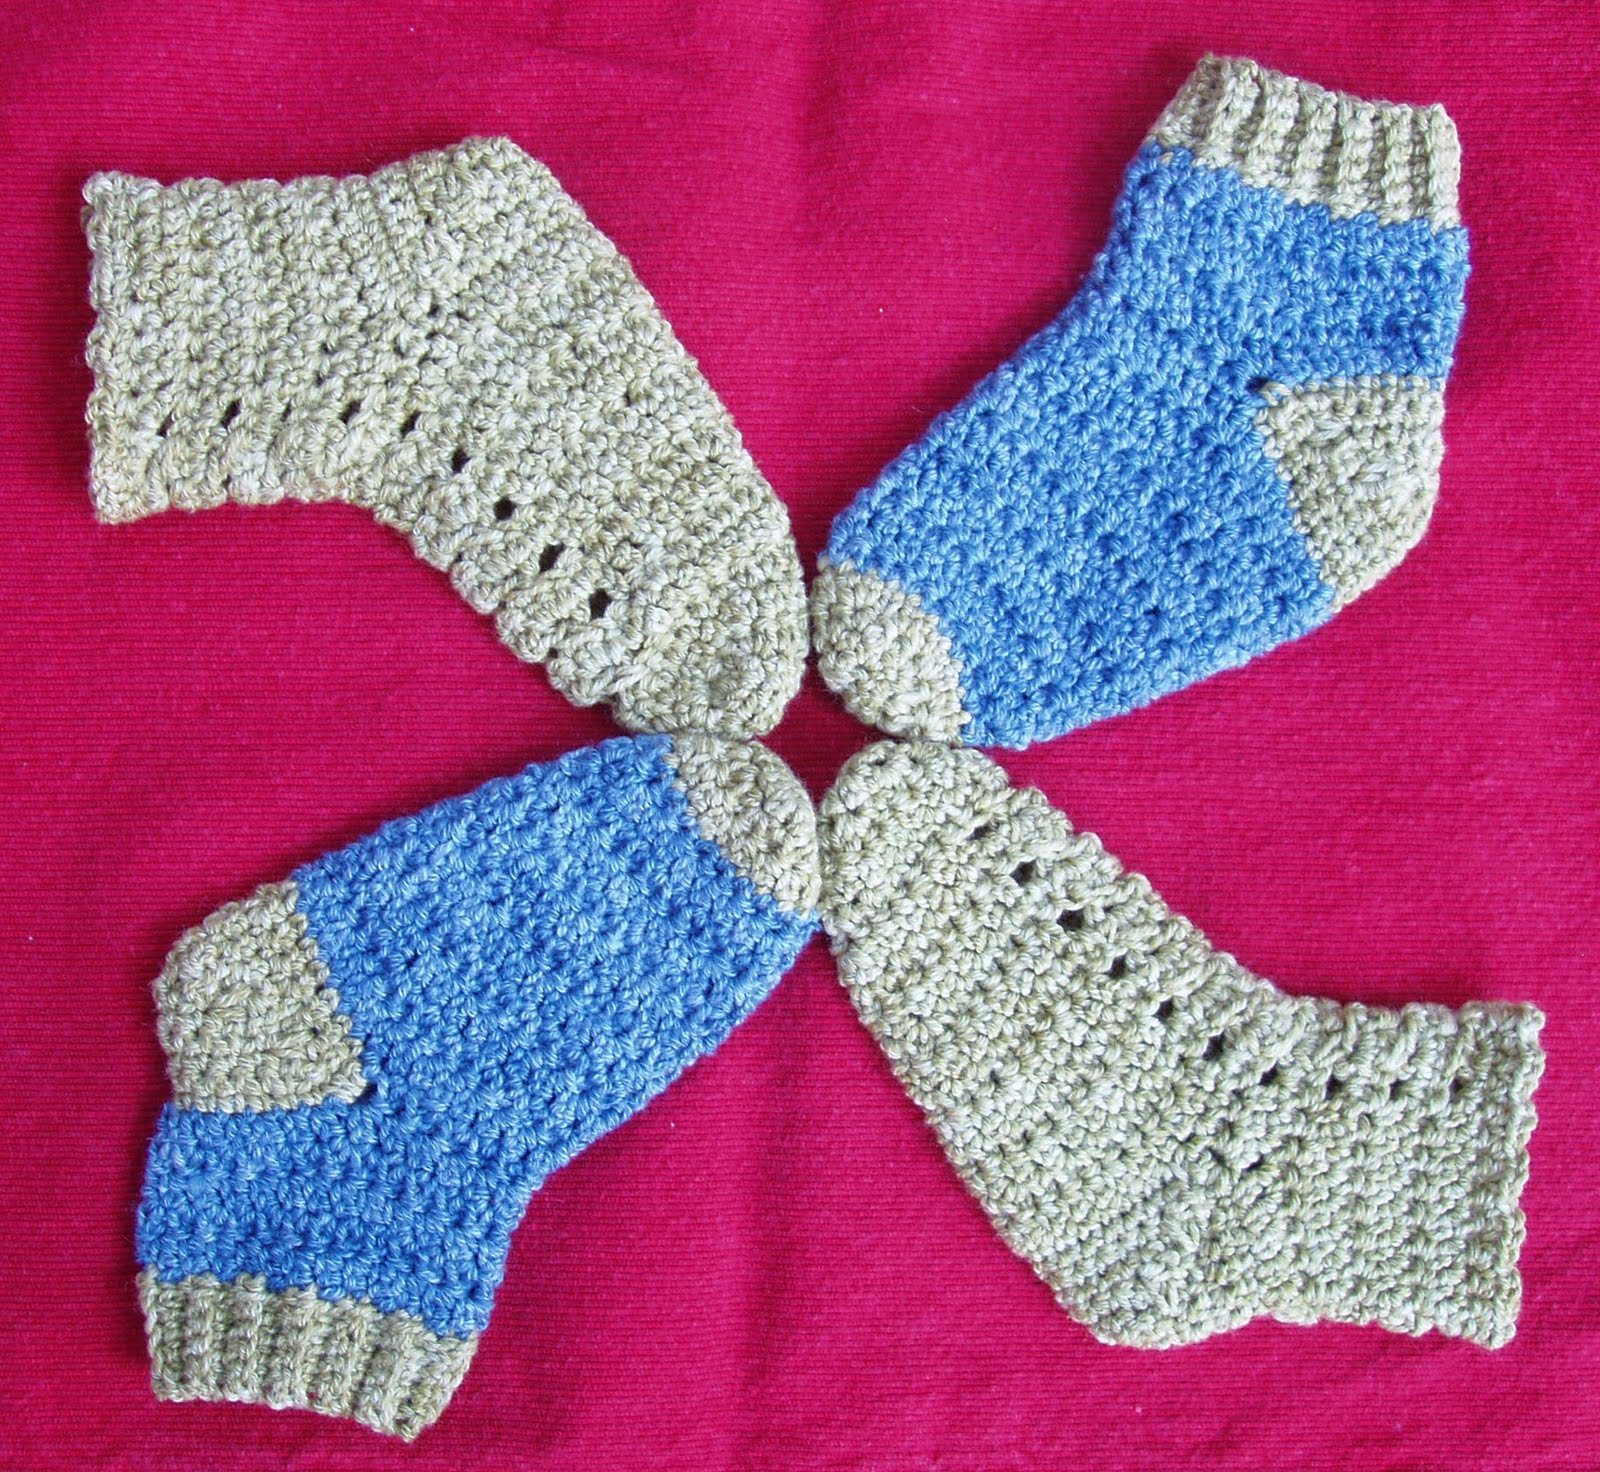 Crochet by faye countdown to baby blueprint snuggly socks 11202010 malvernweather Image collections